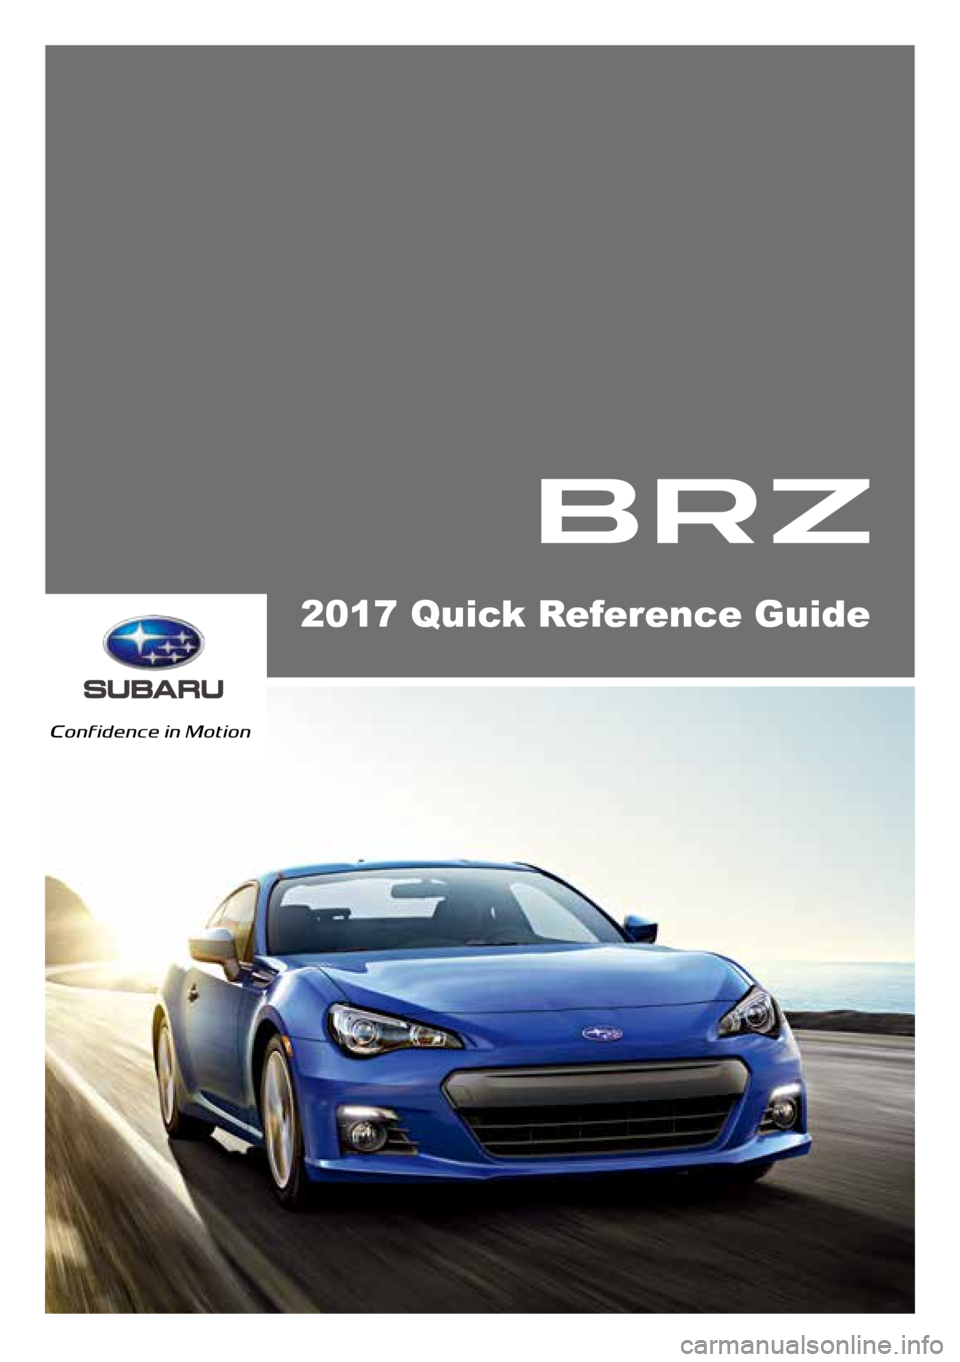 SUBARU BRZ 2017 1.G Quick Reference Guide 2017 Quick Reference Guide